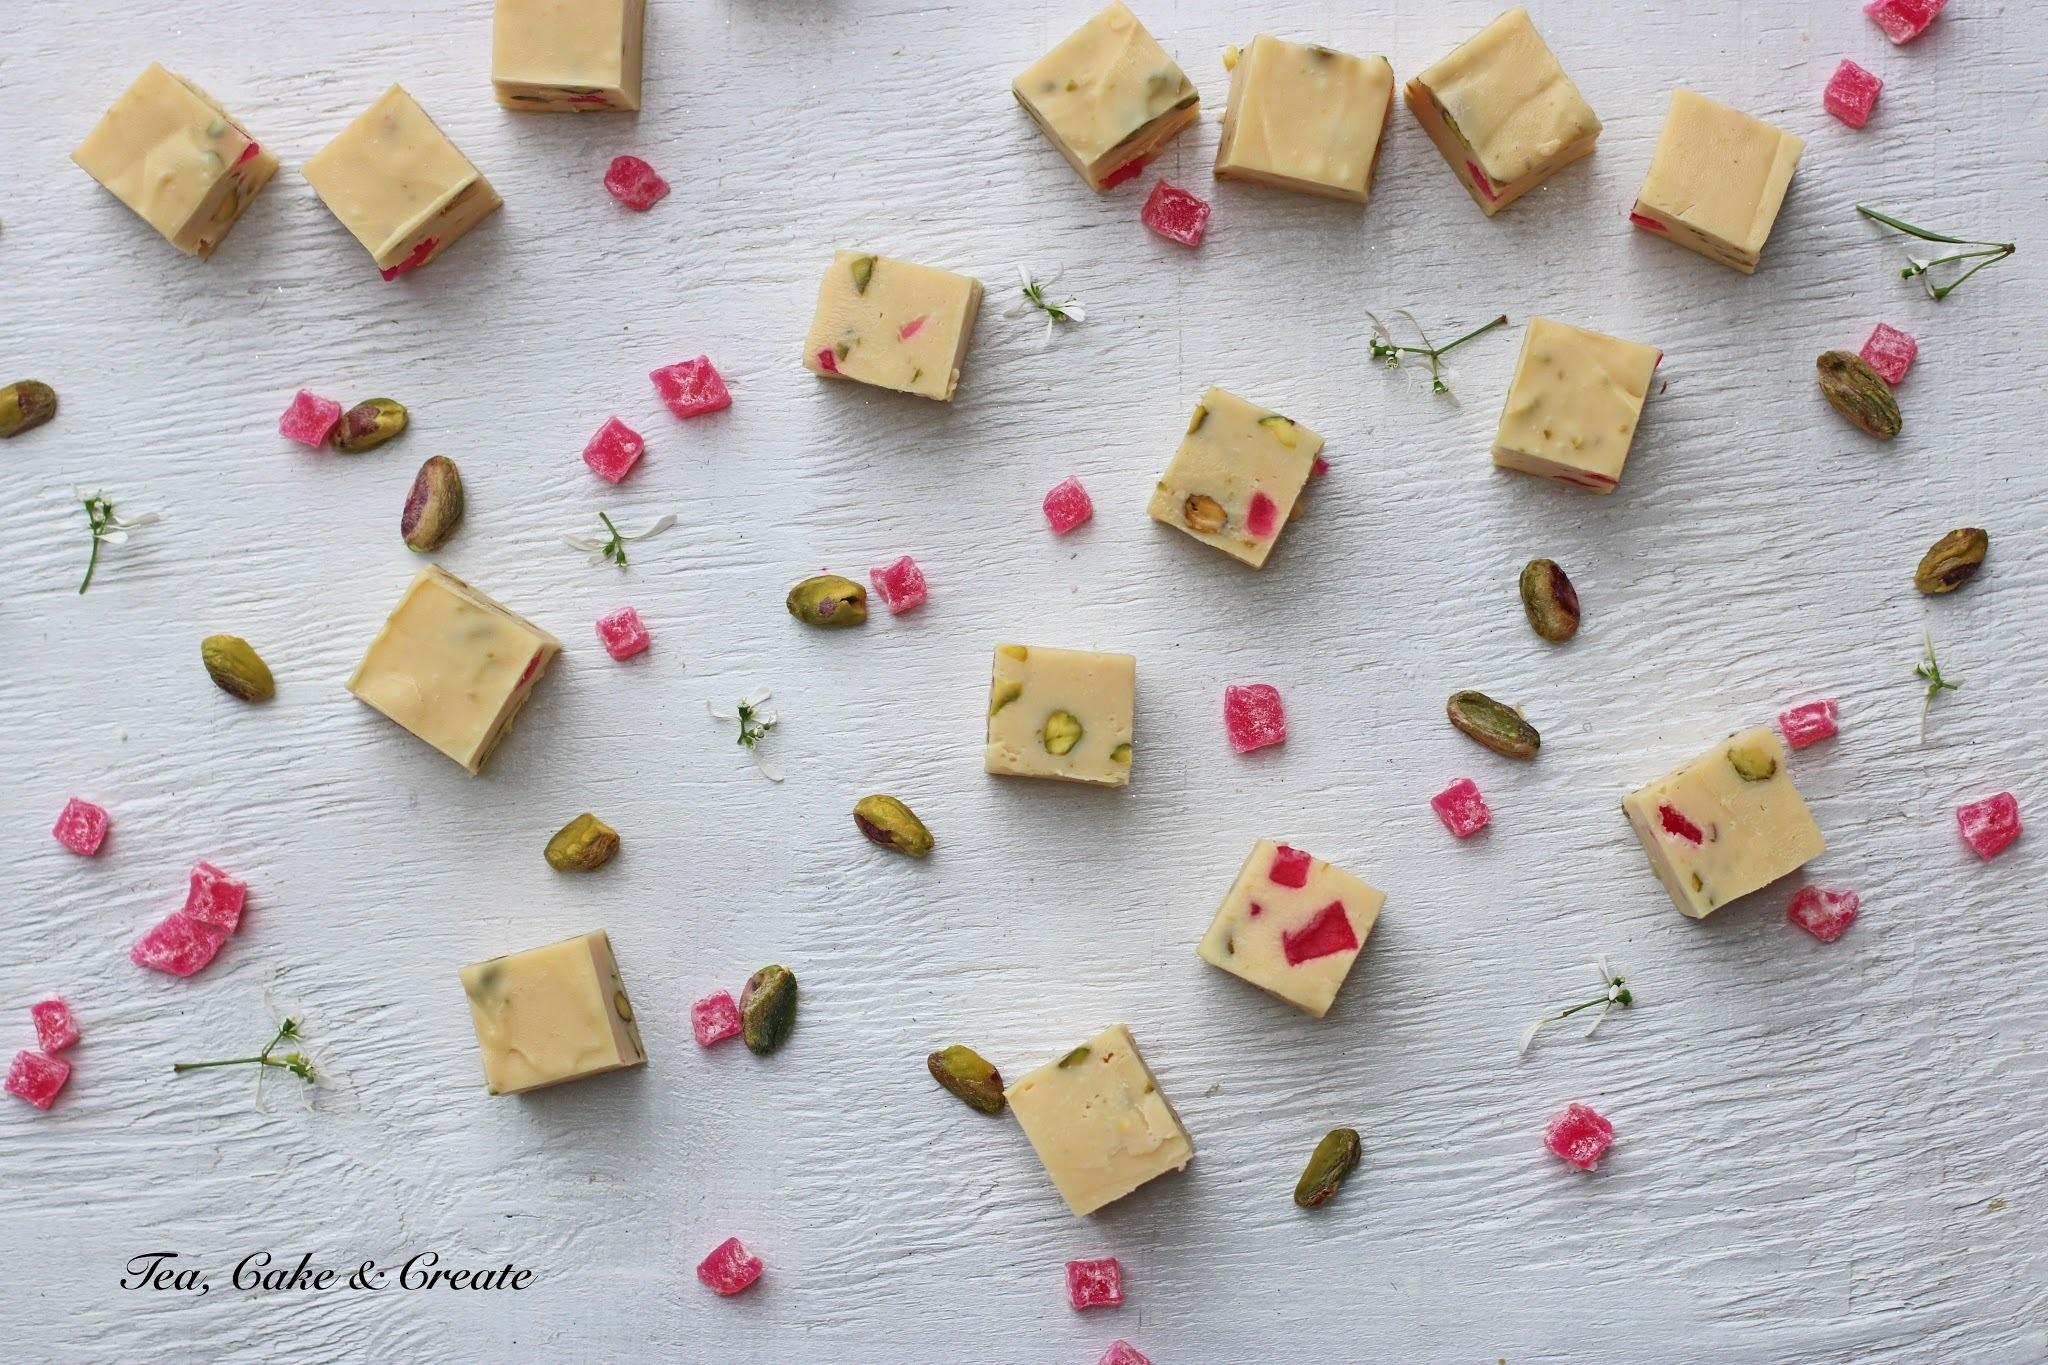 Pistachio and Turkish Delight White Truffle-Fudge Squares